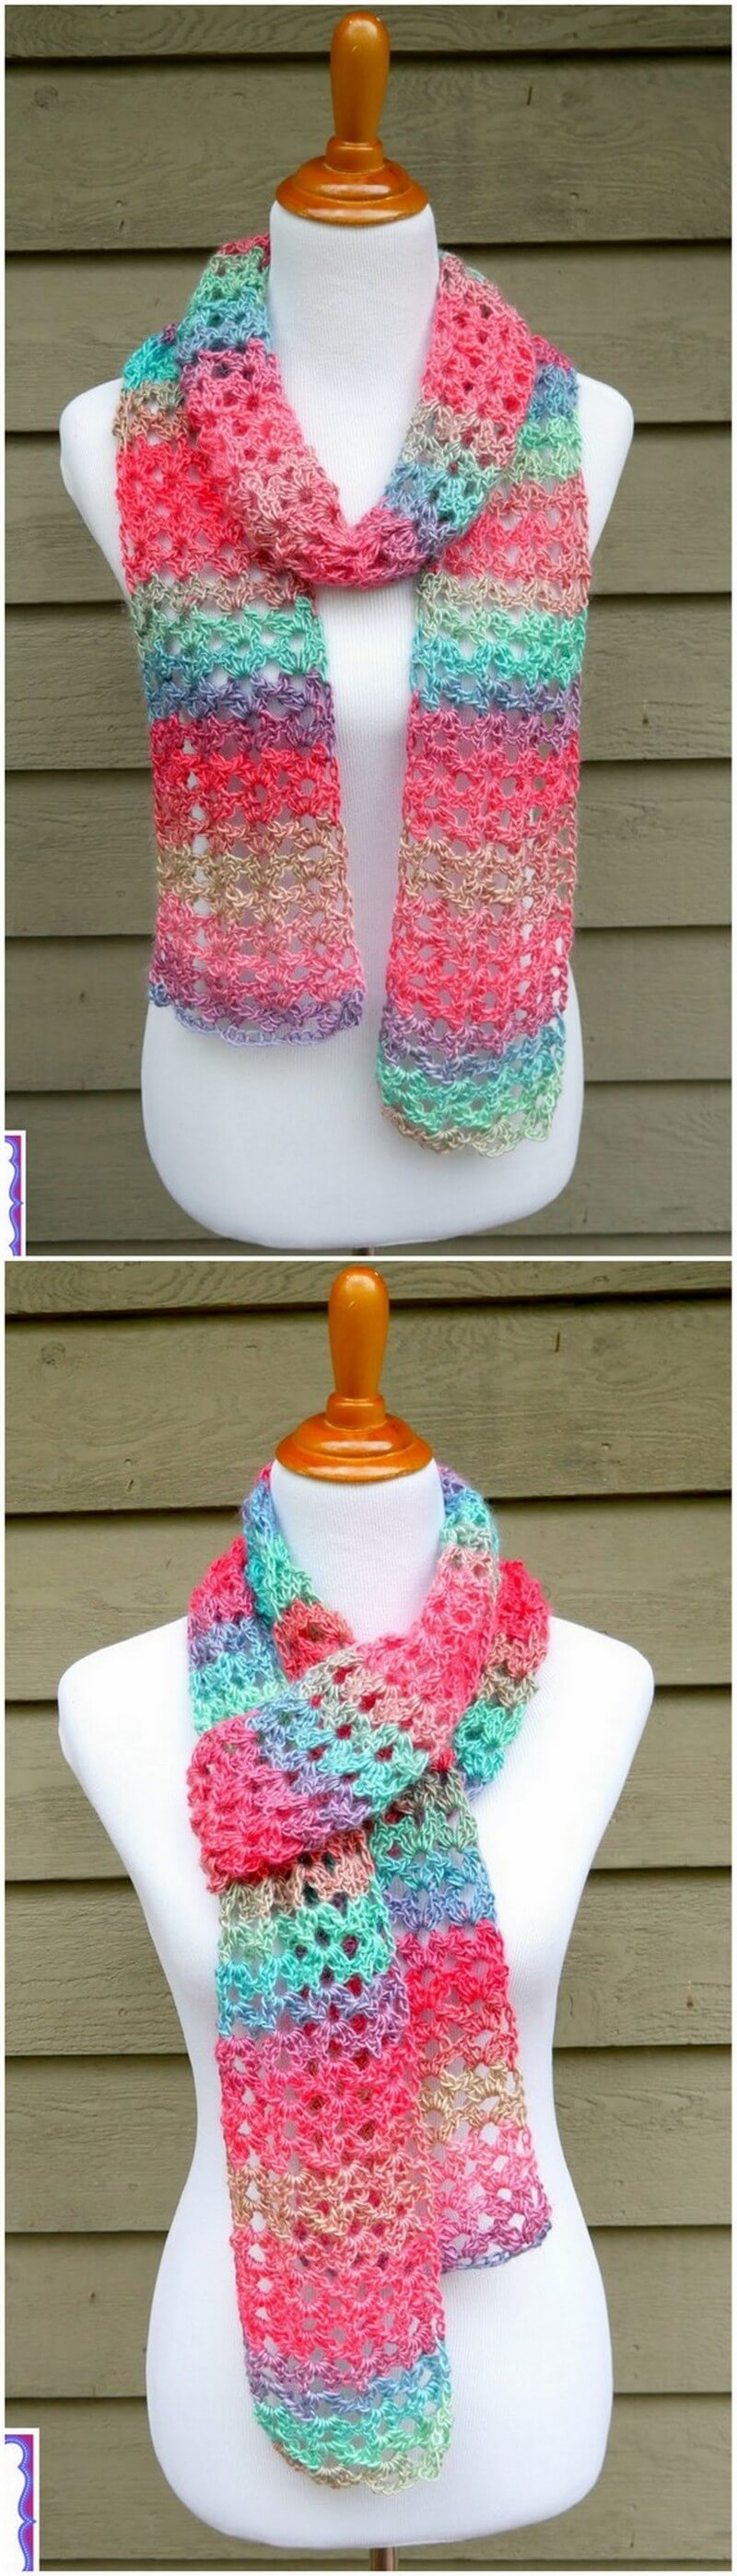 Easy Crochet Scarf Pattern (55)